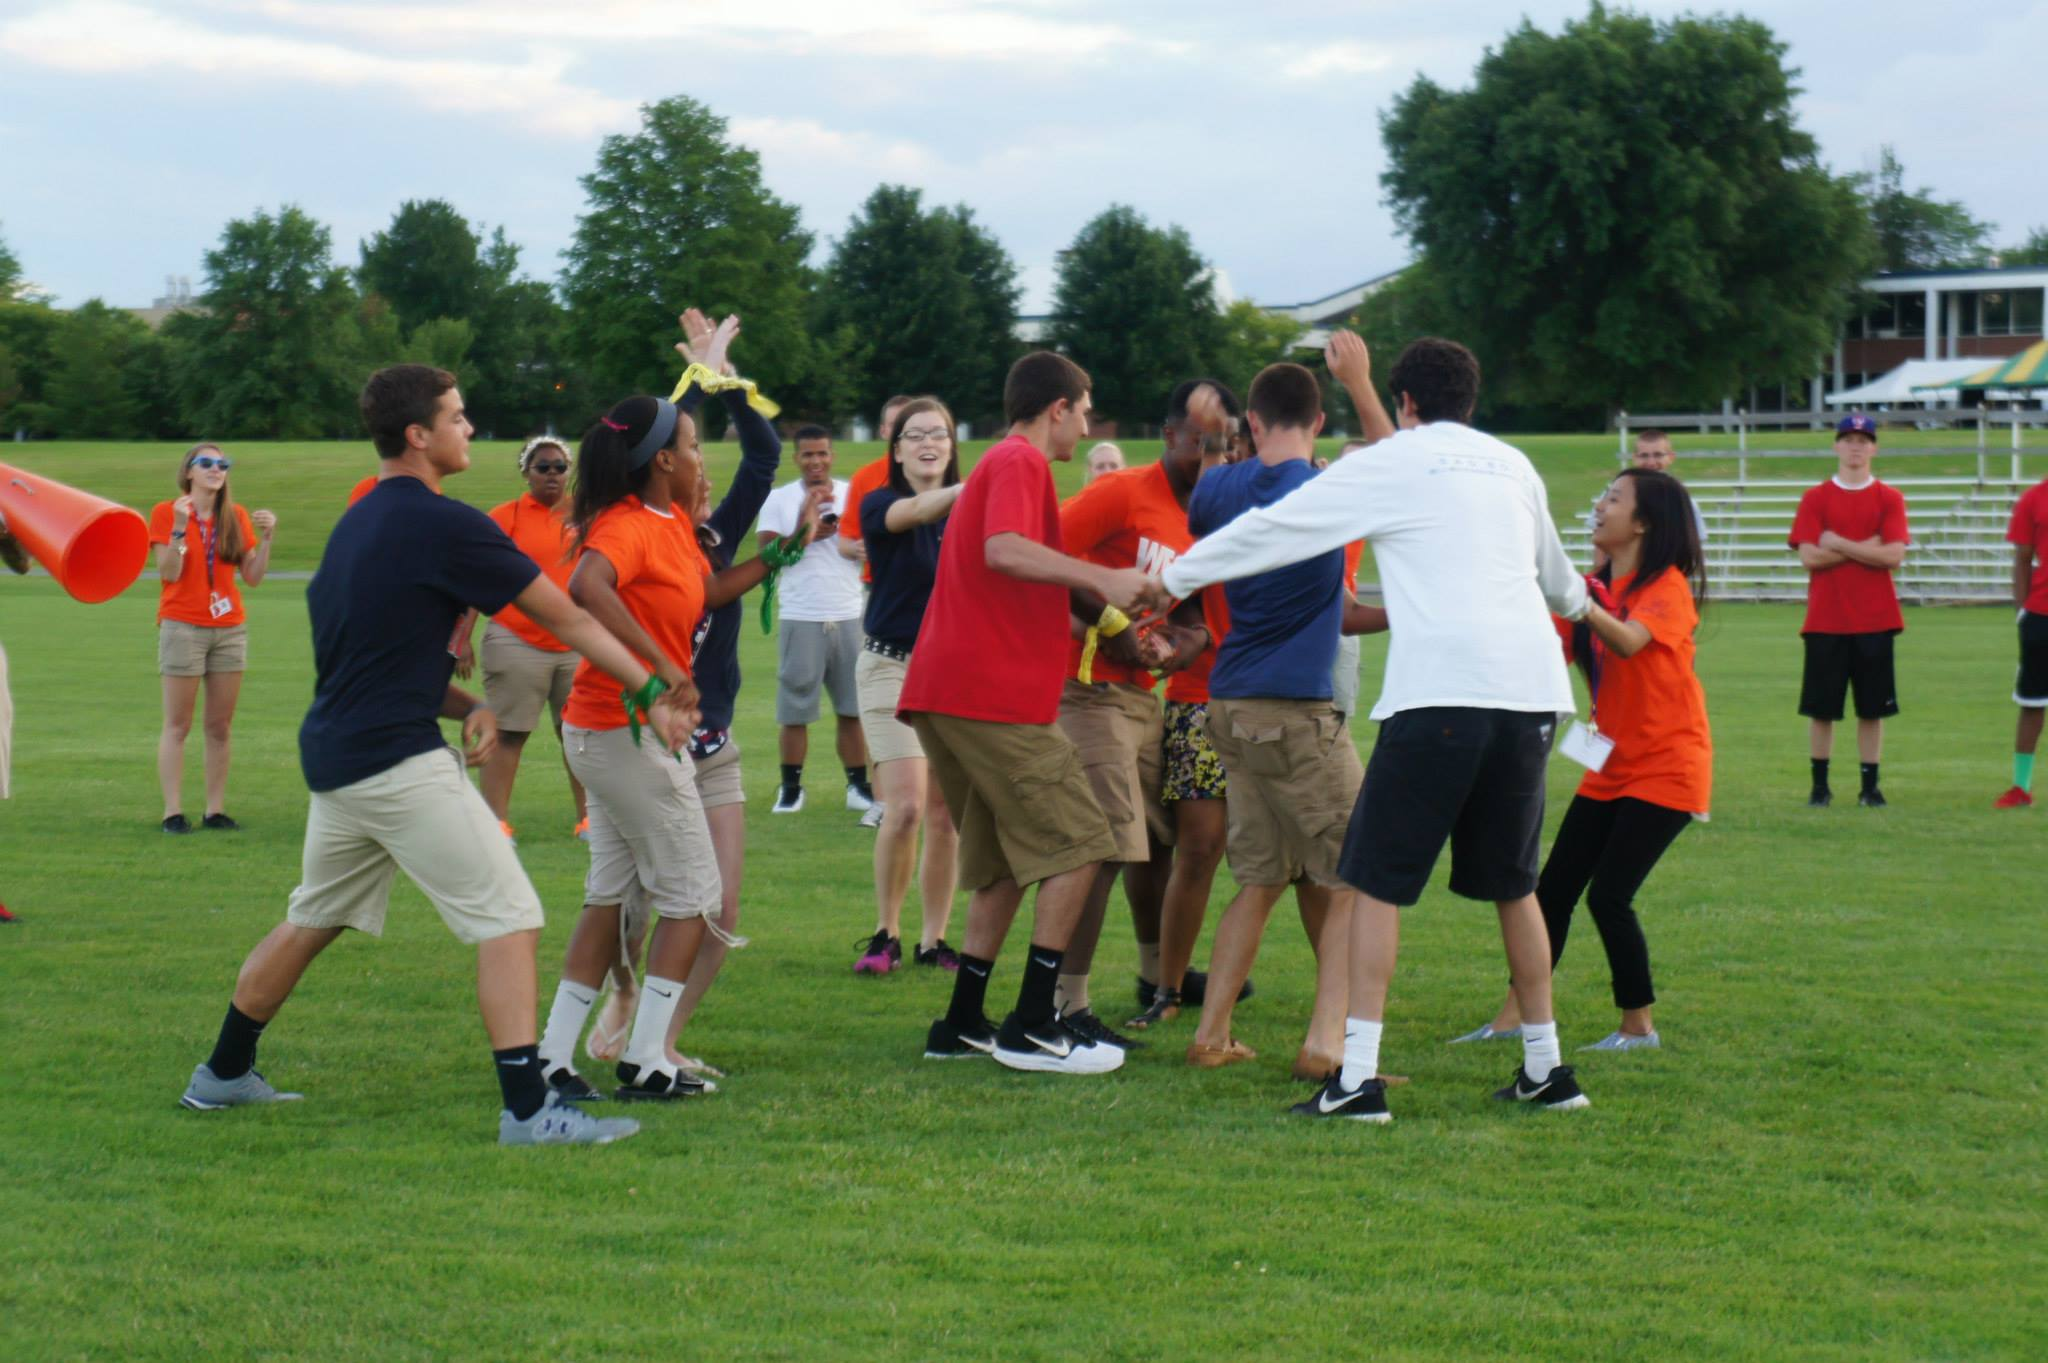 (Ice breakers are one of my favorite things about Orientation!)